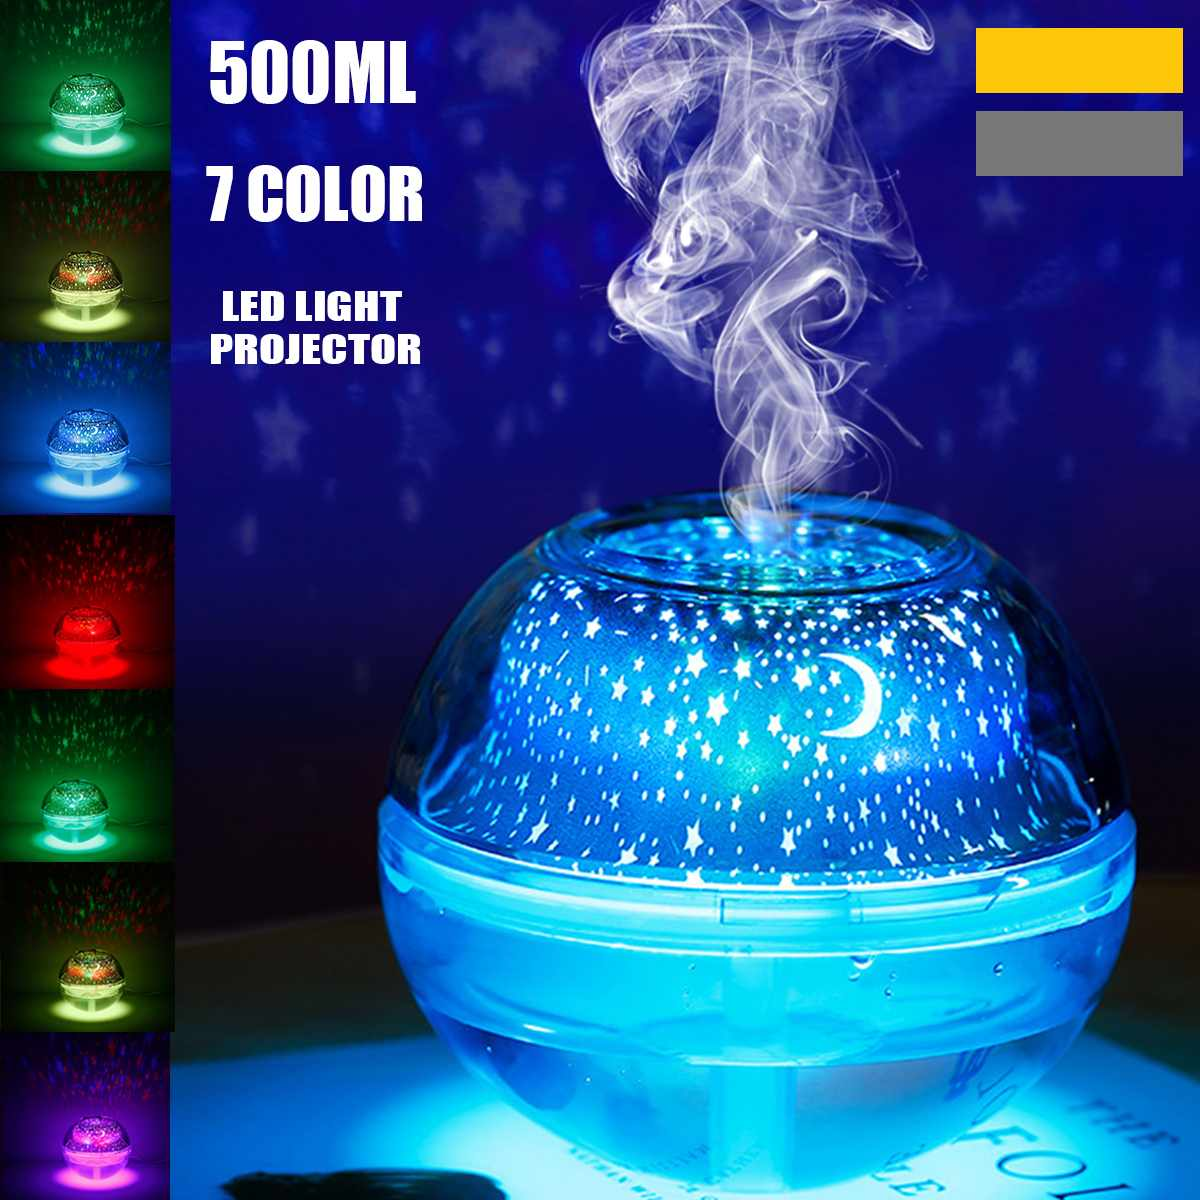 7 LED Color 500ml Projector Air Humidifier Essential Diffuser Aromatherapy Home Purifier Desk Night Lamp USB Home Decor